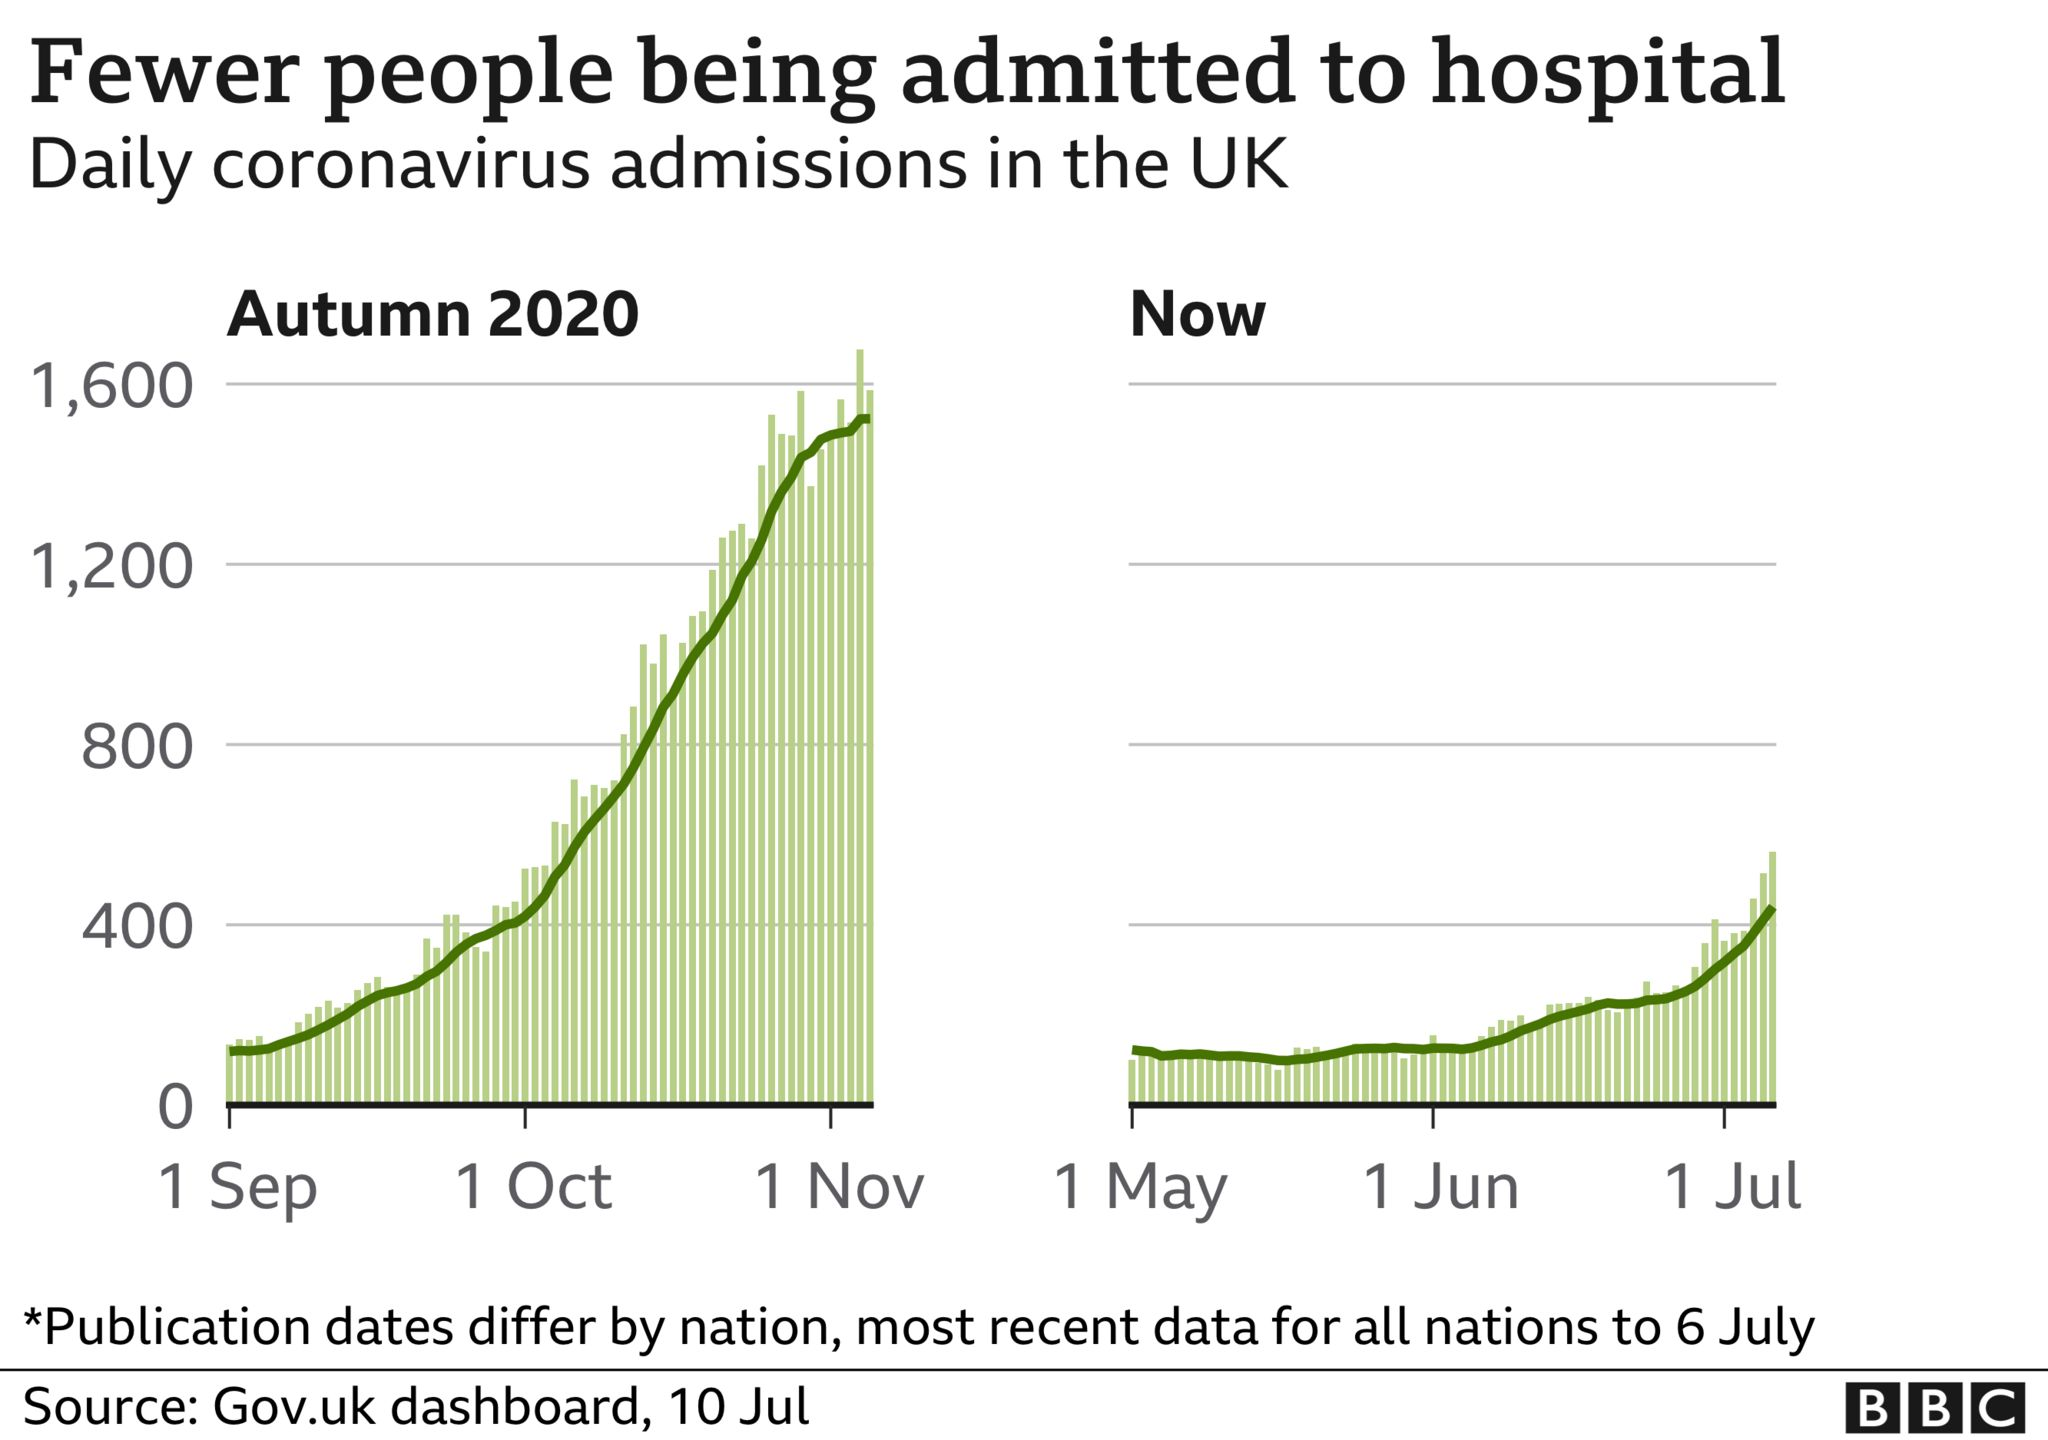 Graph showing fewer people being admitted to hospital than during autumn 2020